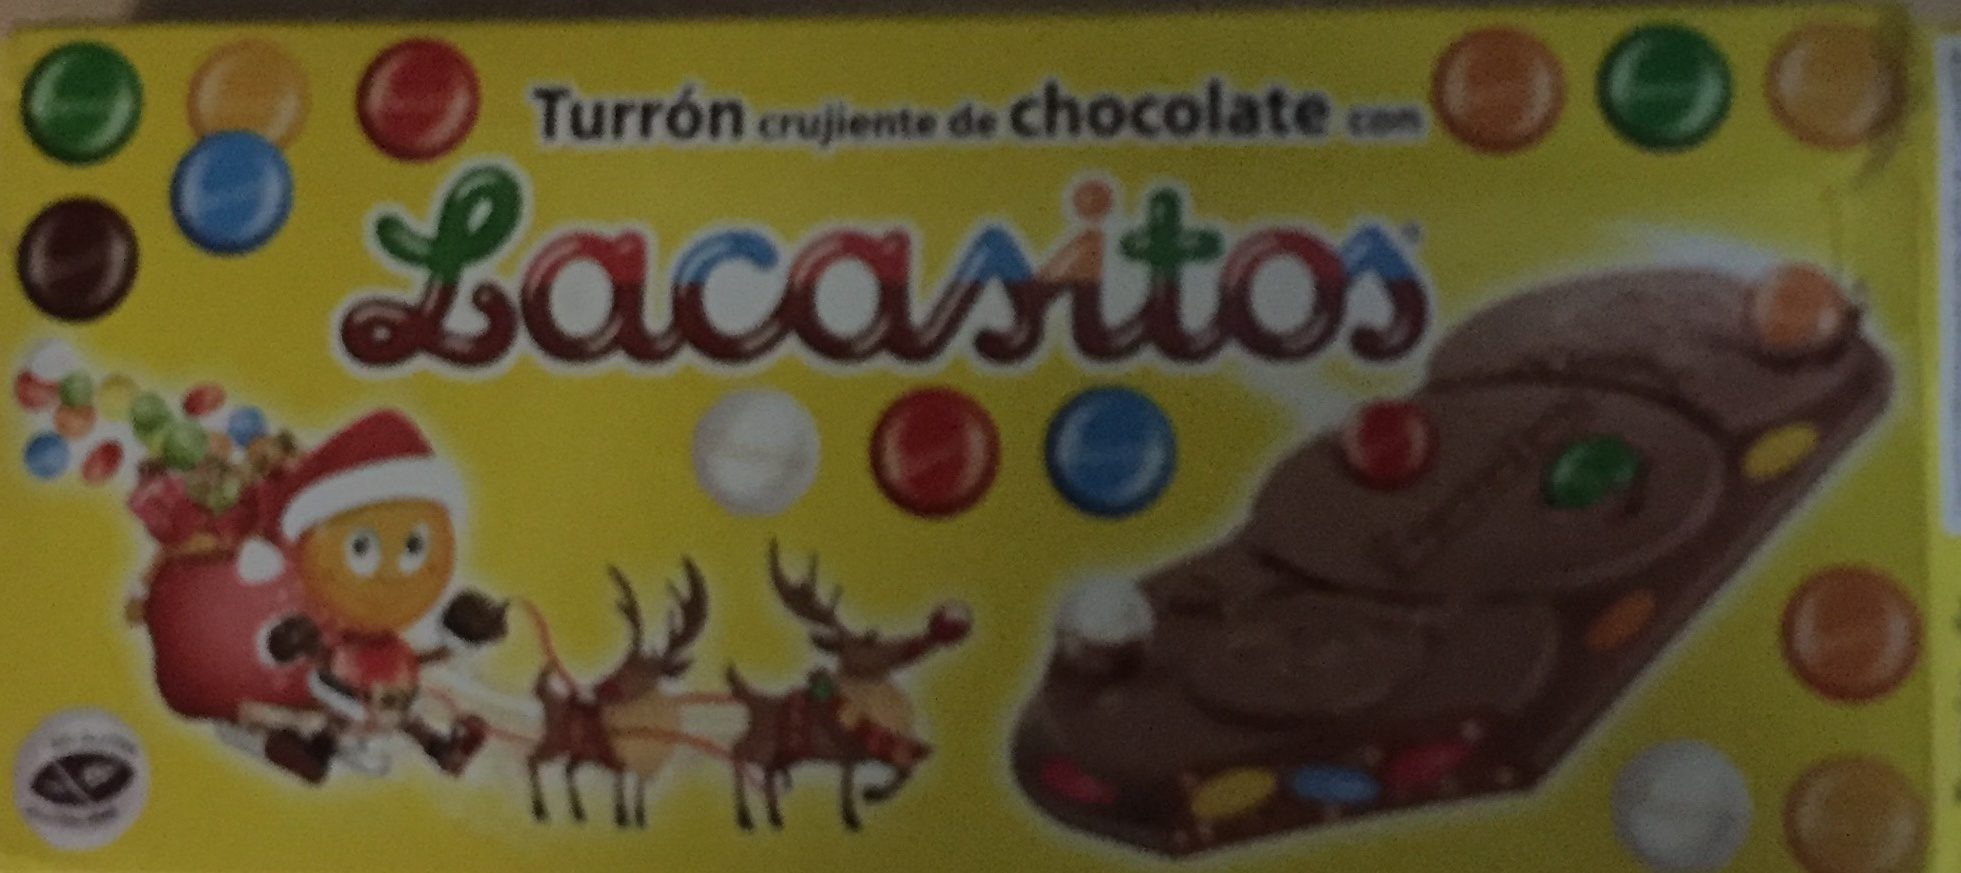 Turrón De Chocolate Con Lacasitos 200 Gr + 15 Gr Gratis - Product